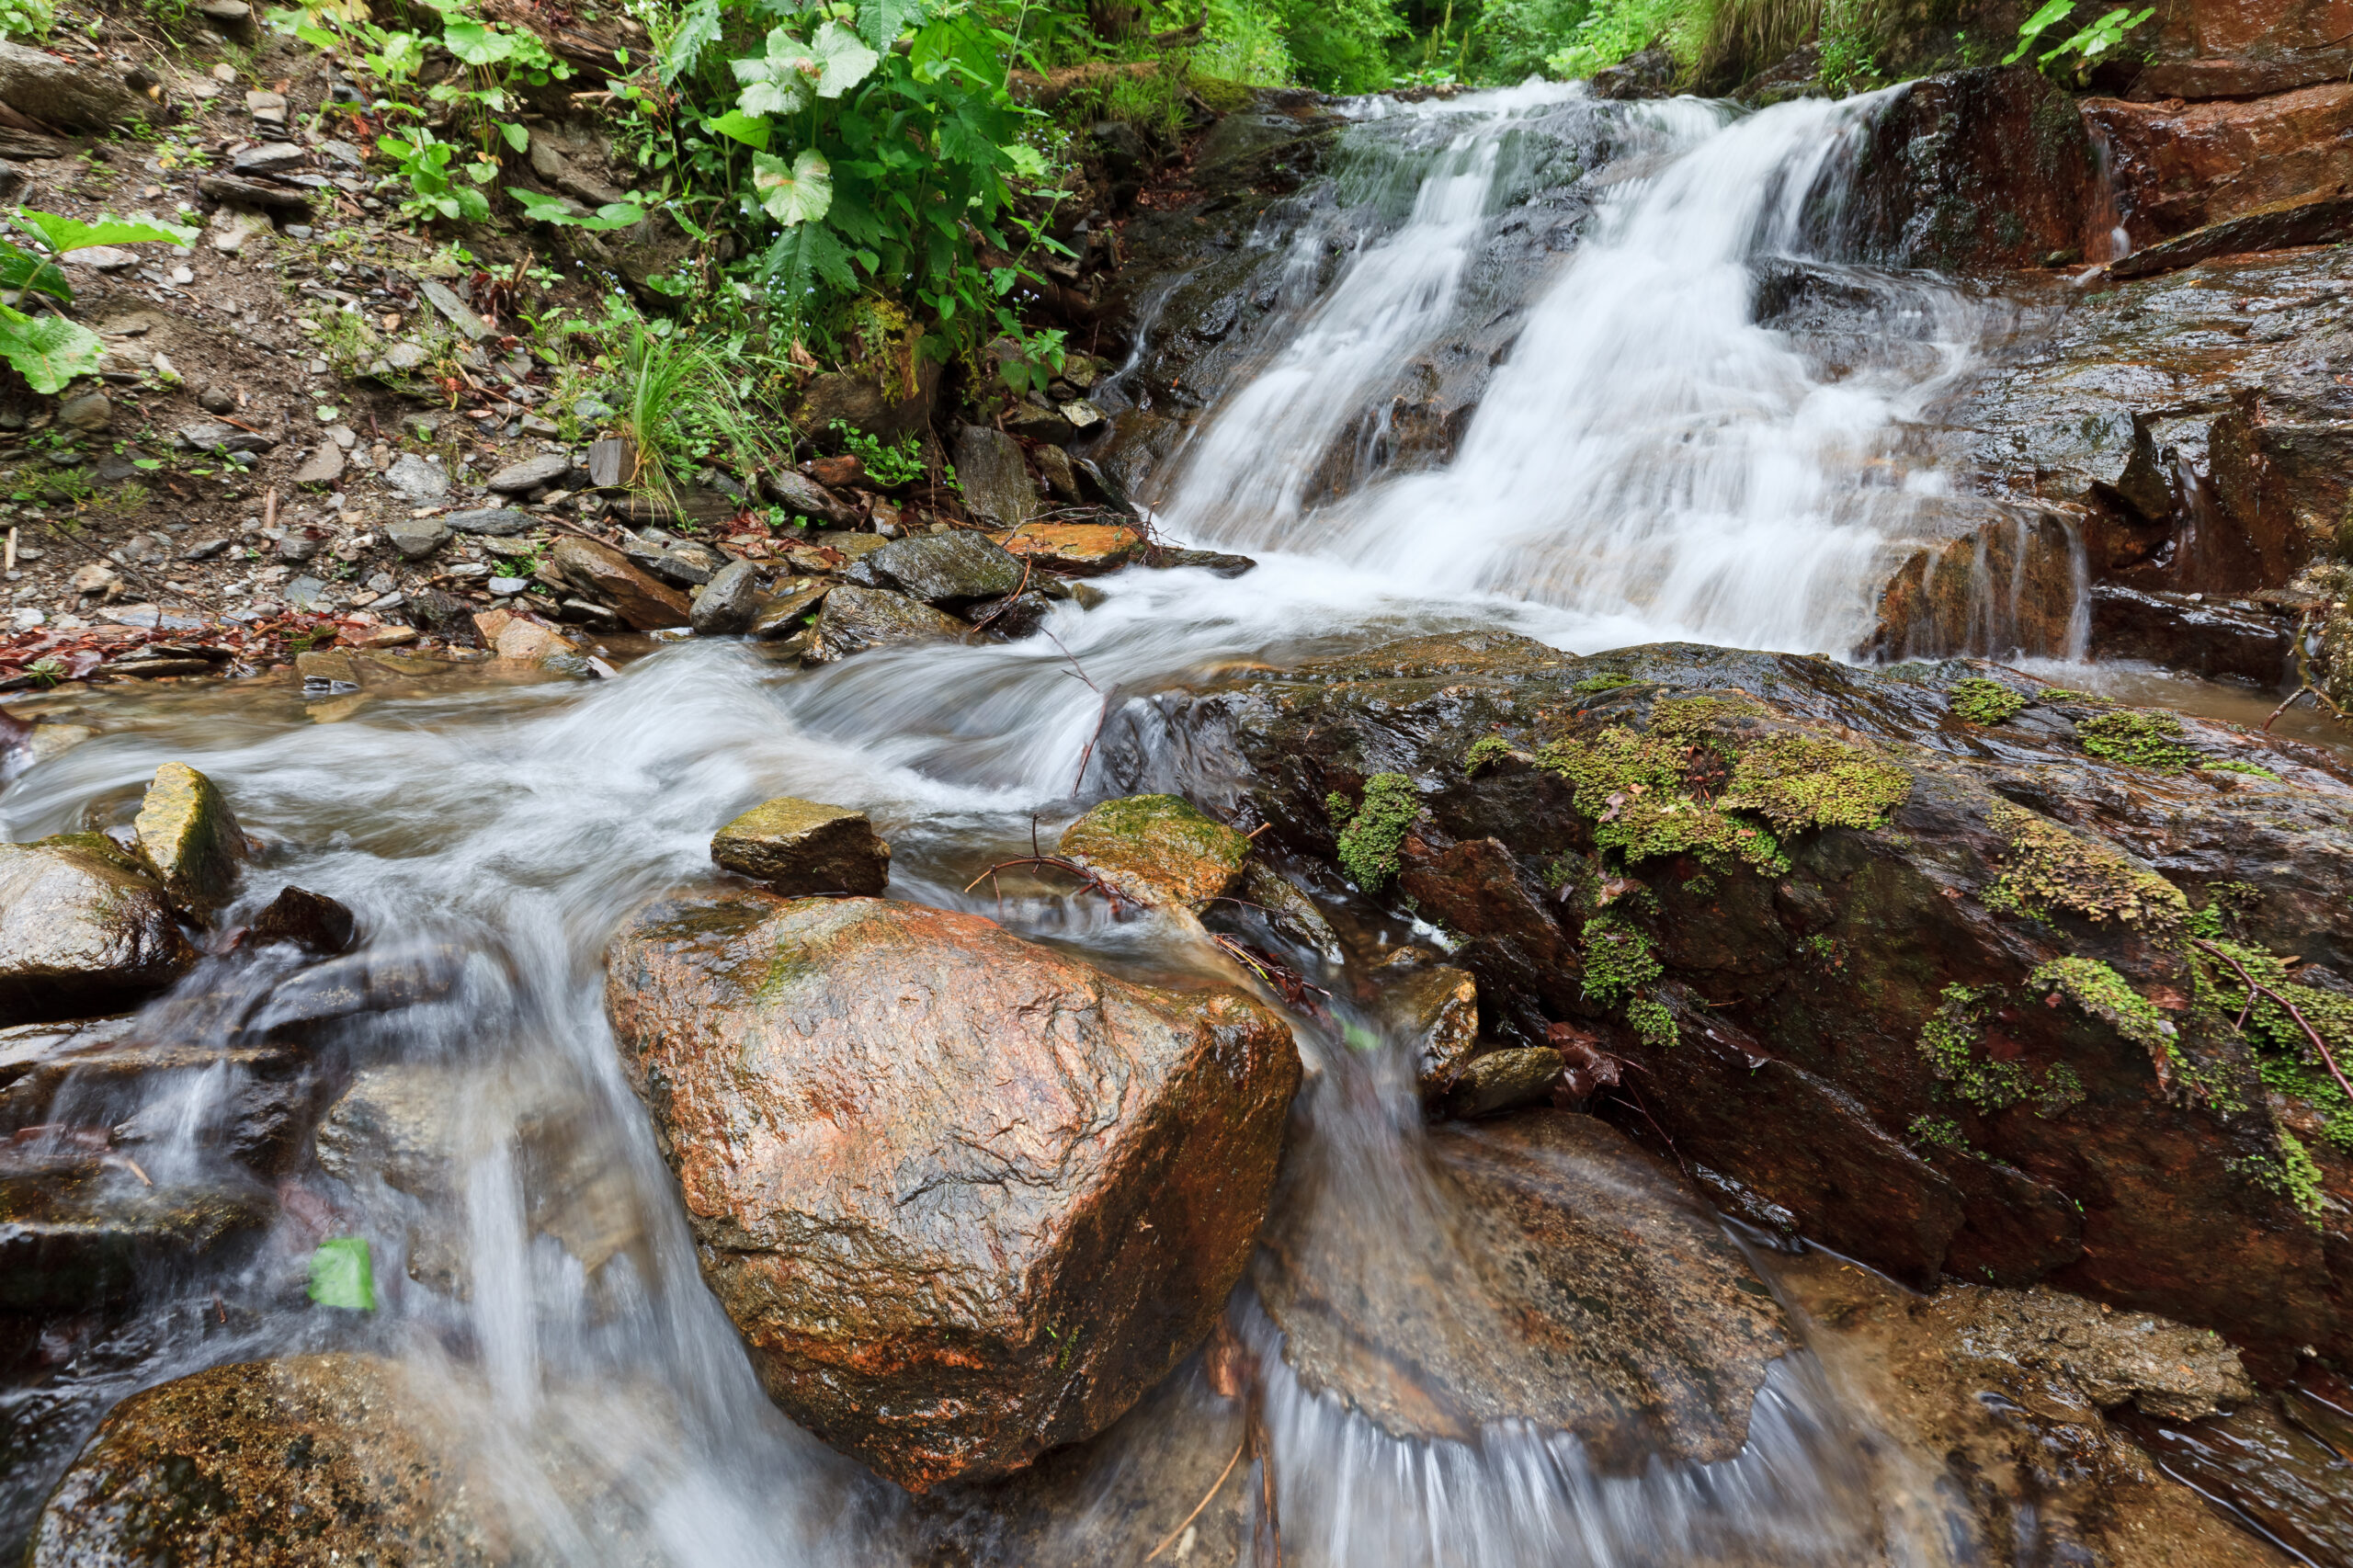 A small waterfall in a forest flows onto surrounding rocks.